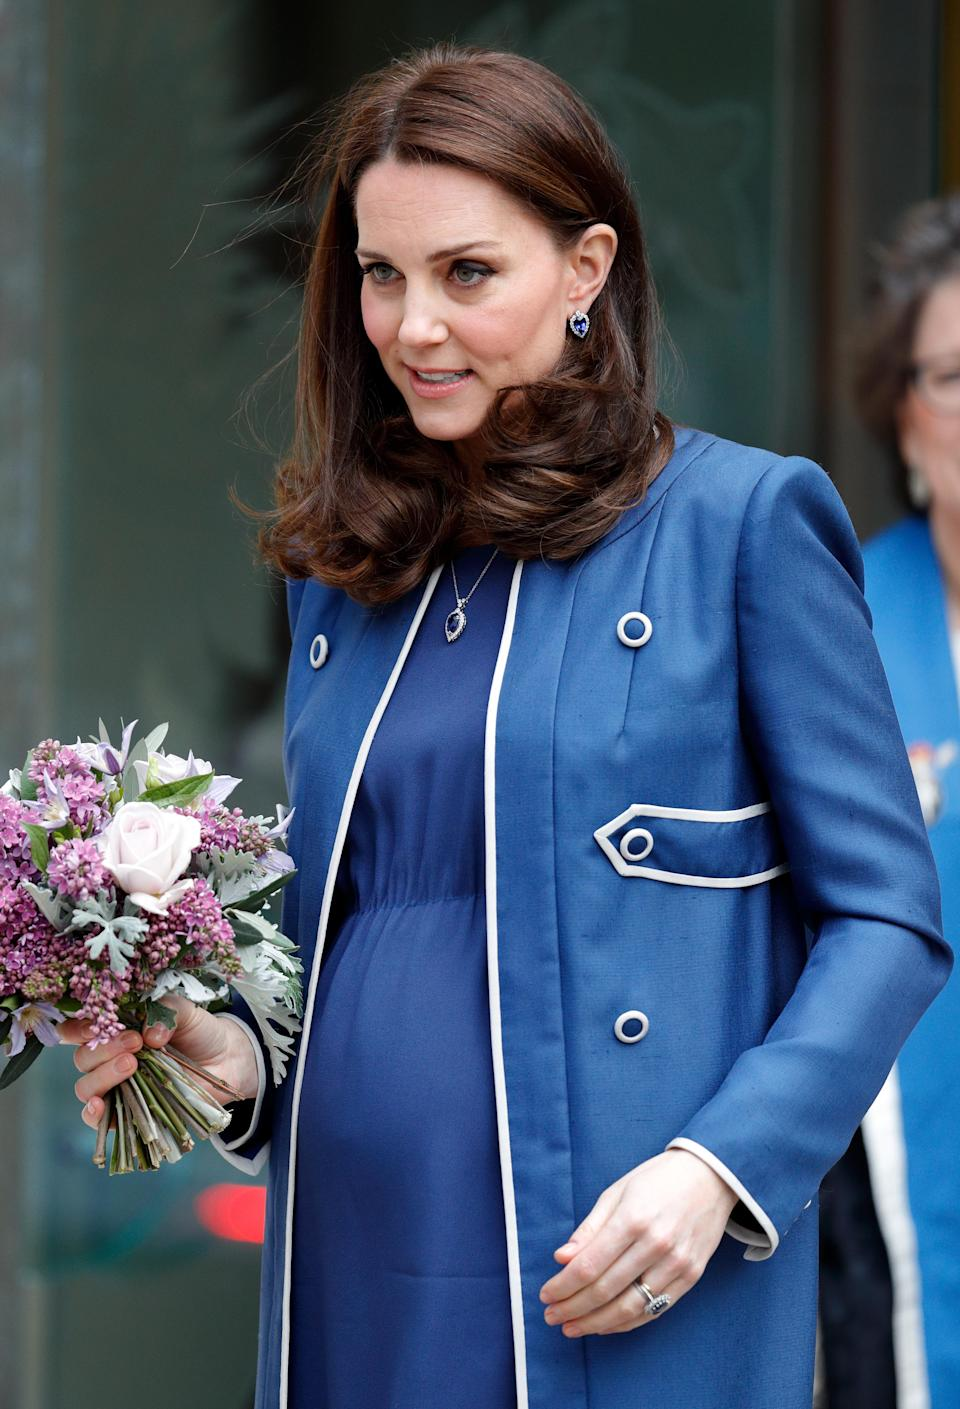 <p>The royal accepted a role role as the Patron of the Royal College of Obstetricians and Gynaecologists, a role previously held by the Queen Mother, wearing a Jackie O-style Jenny Packham bespoke coat (Getty Images) </p>